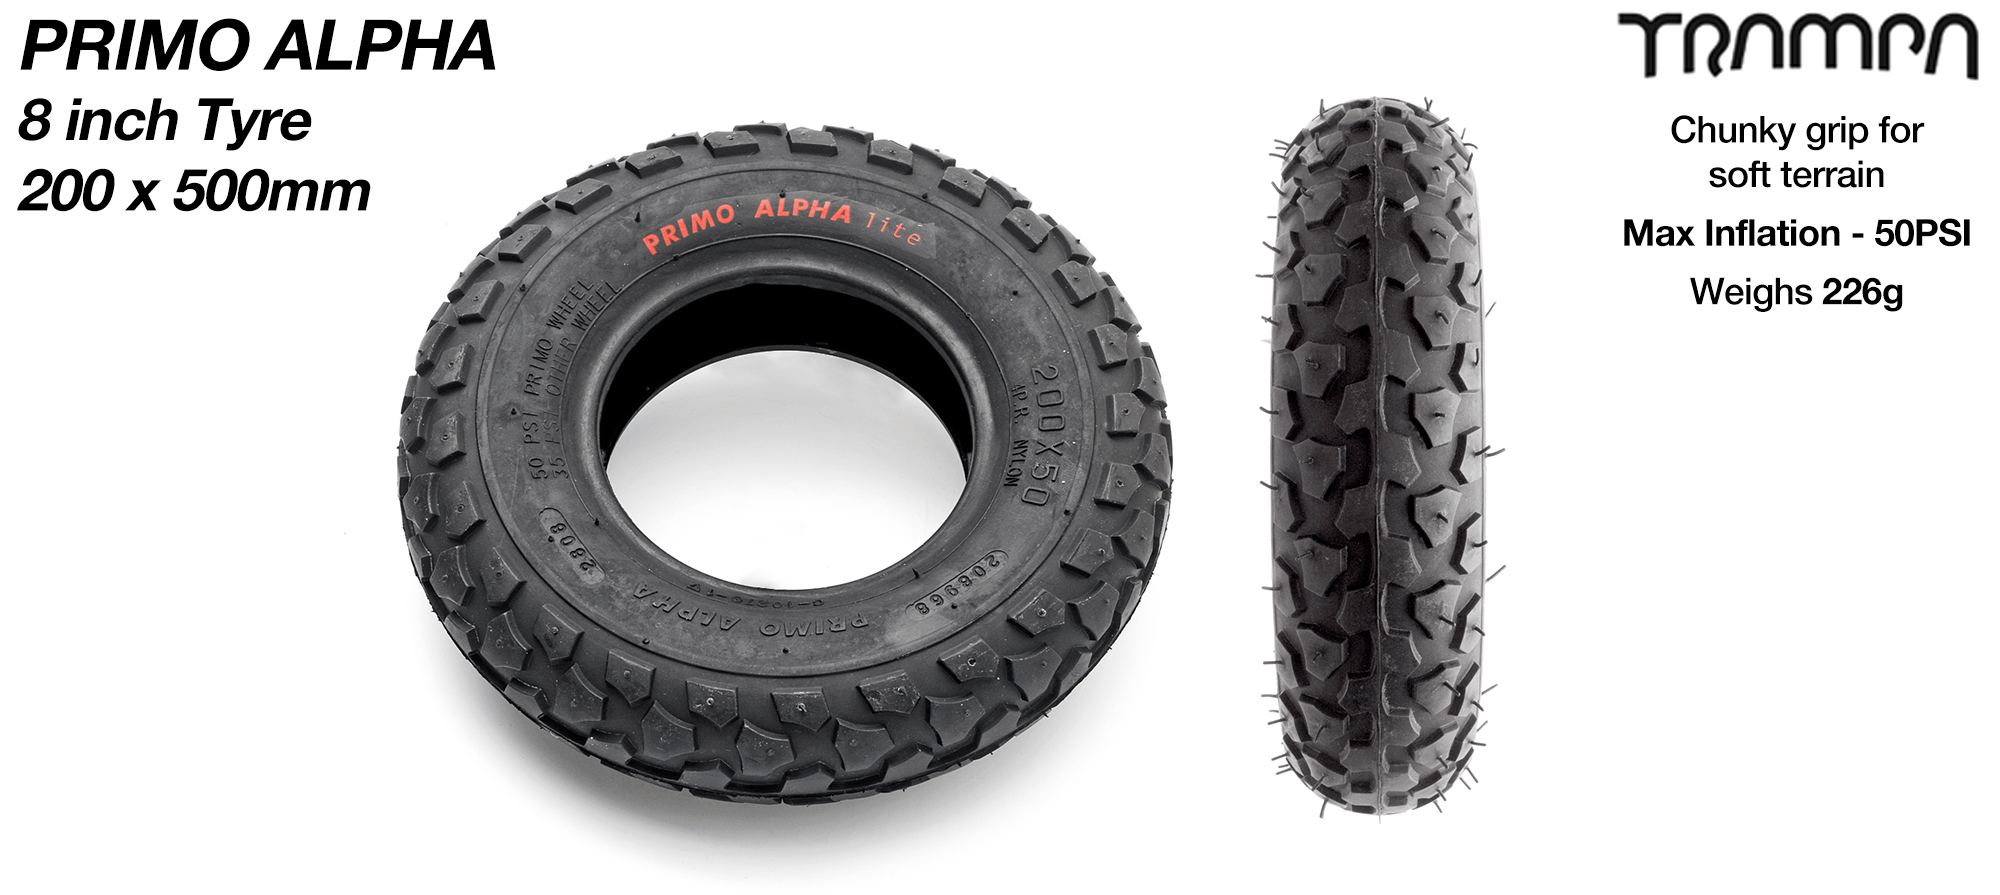 8 Inch BLACK PRIMO ALPHA Tyre- Premium 8 Inch All purpose Dirt Tyres